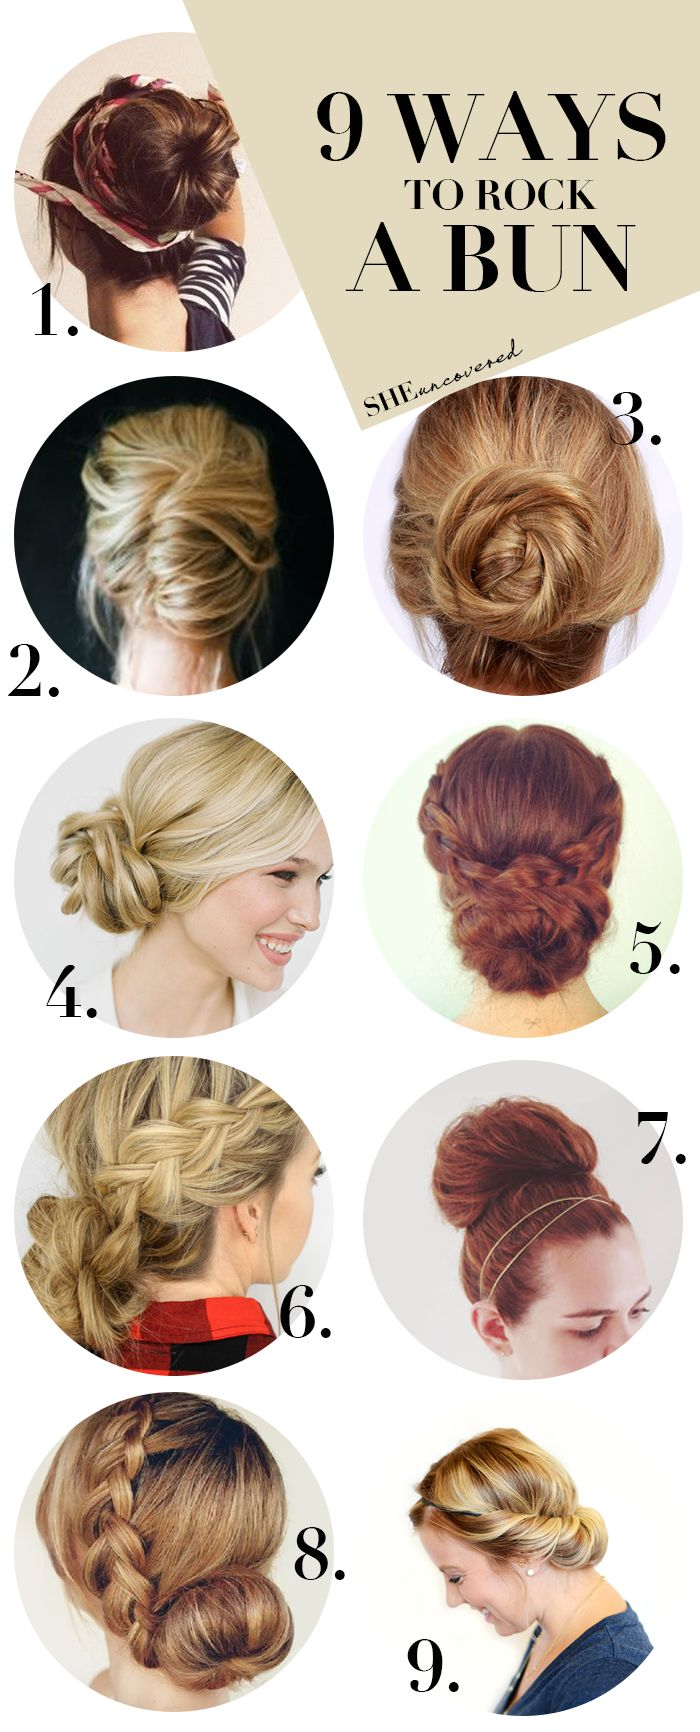 From the yoga studio to everyday life, the bun is the easiest hairstyle to take you through your day! Check out our round-up of 9 ways to rock a bun!